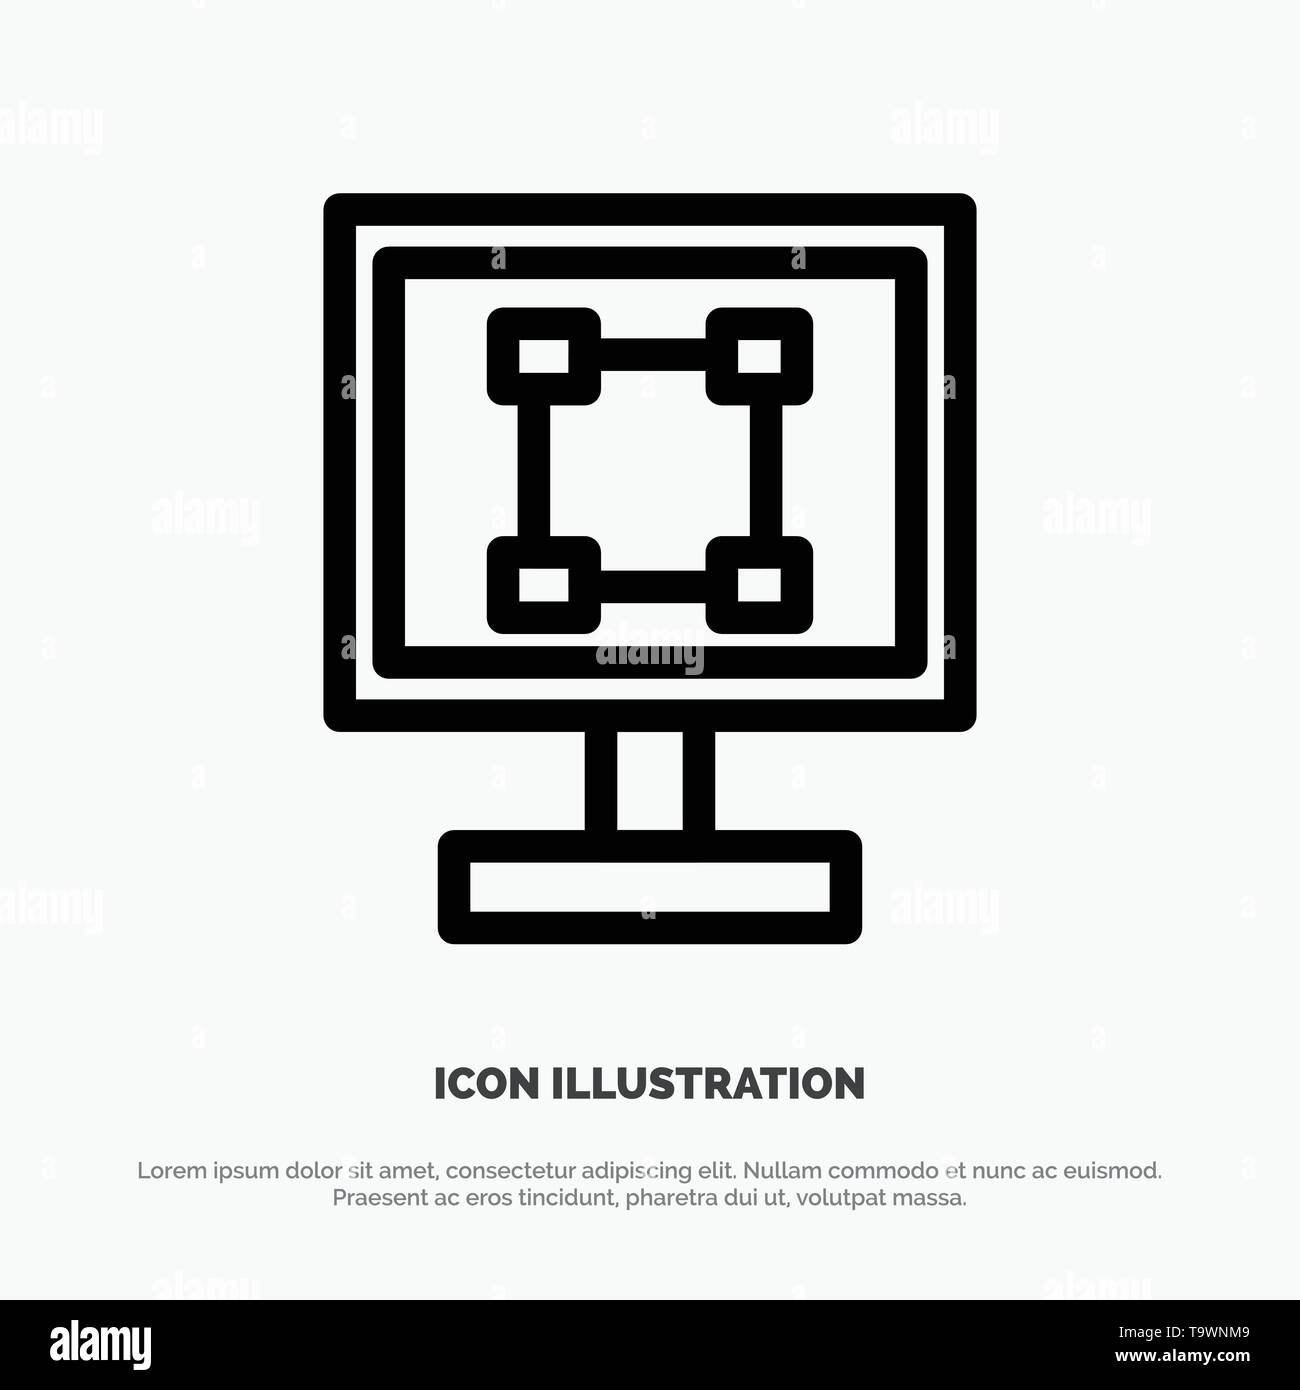 Crop, Graphics, Design, Program, Application Line Icon Vector - Stock Image